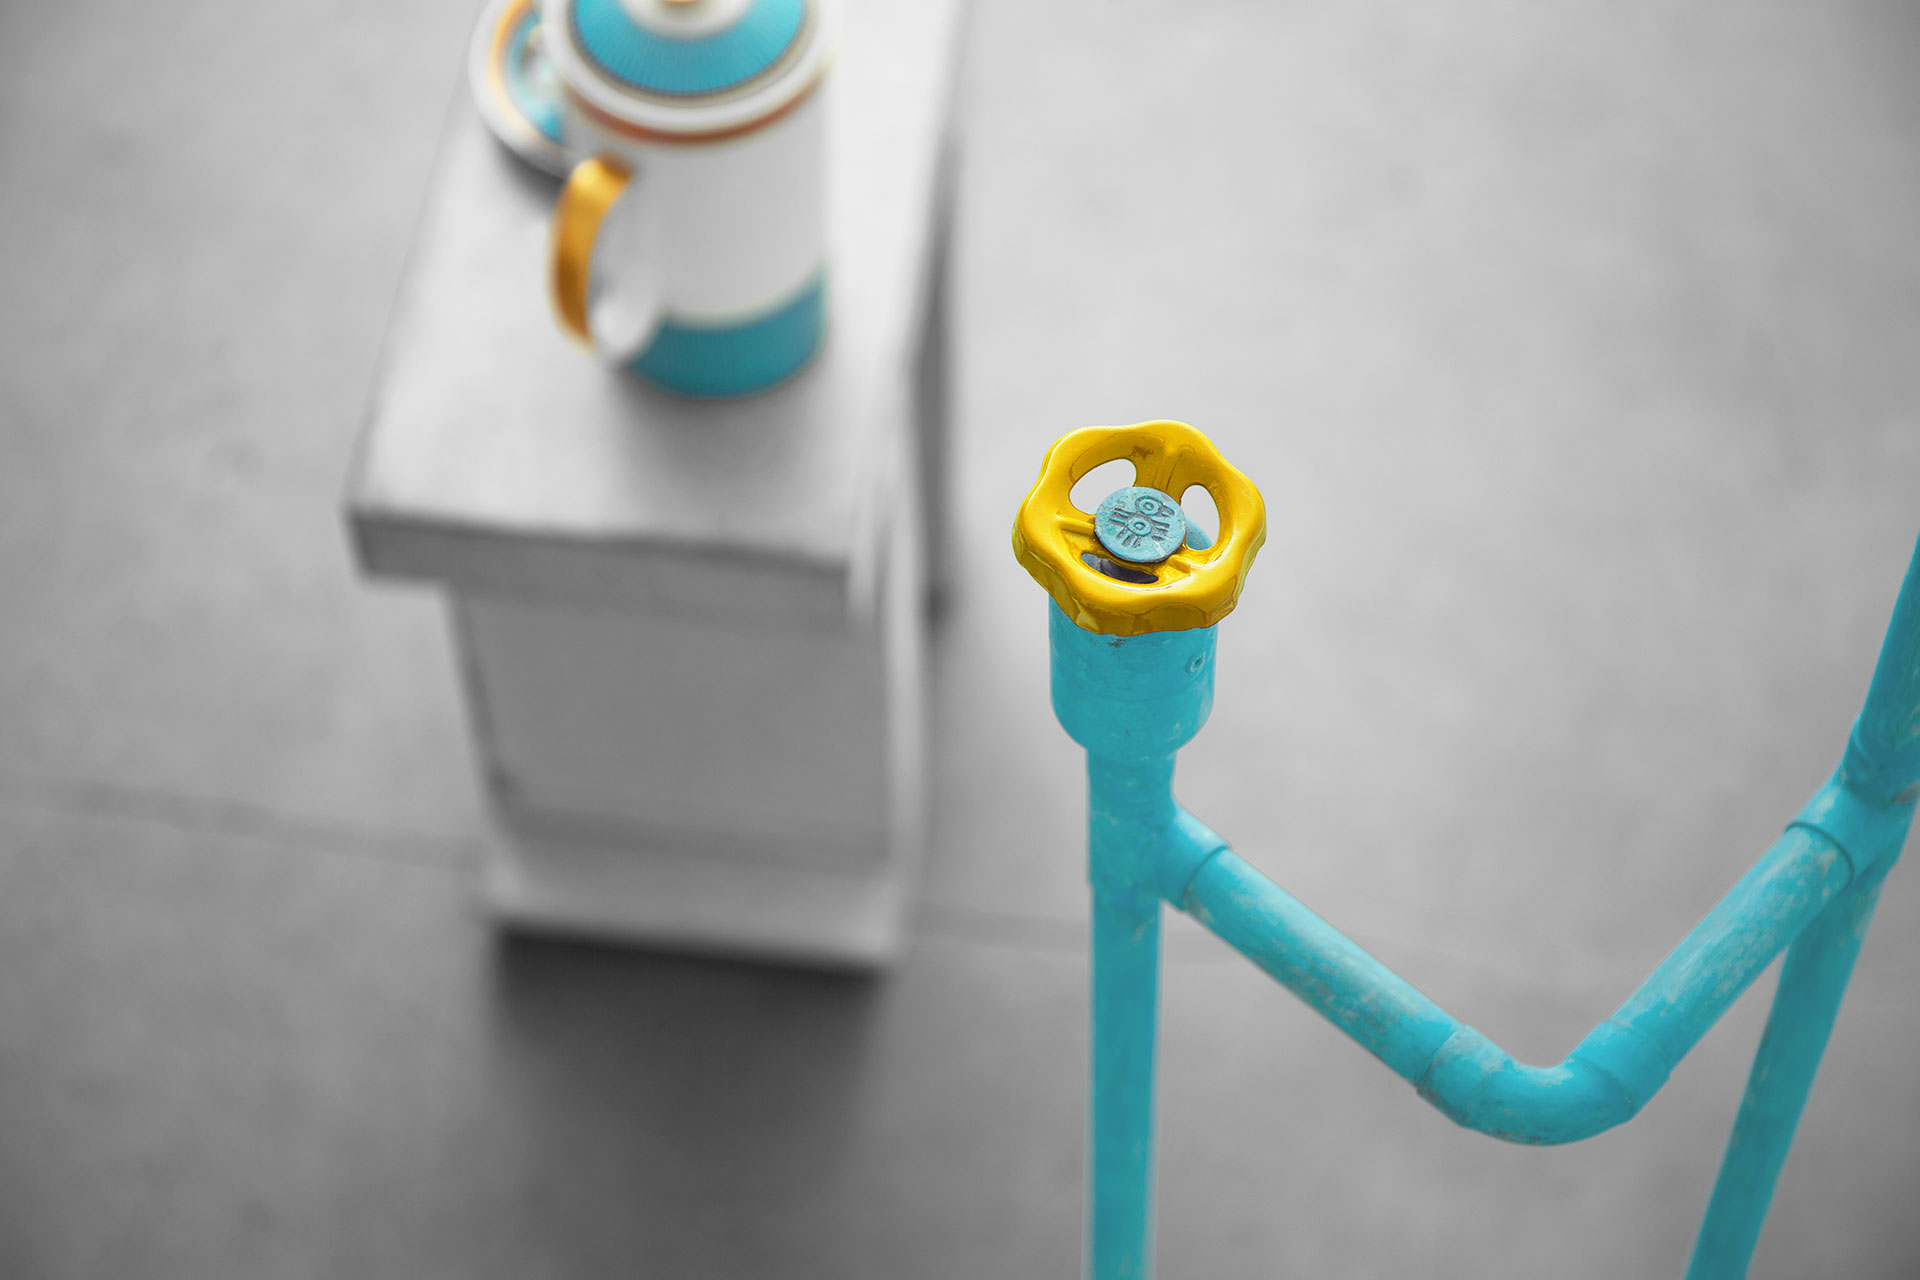 Cool yellow knob dimmer in trendy turquoise floor lamp inspired by industrial style design